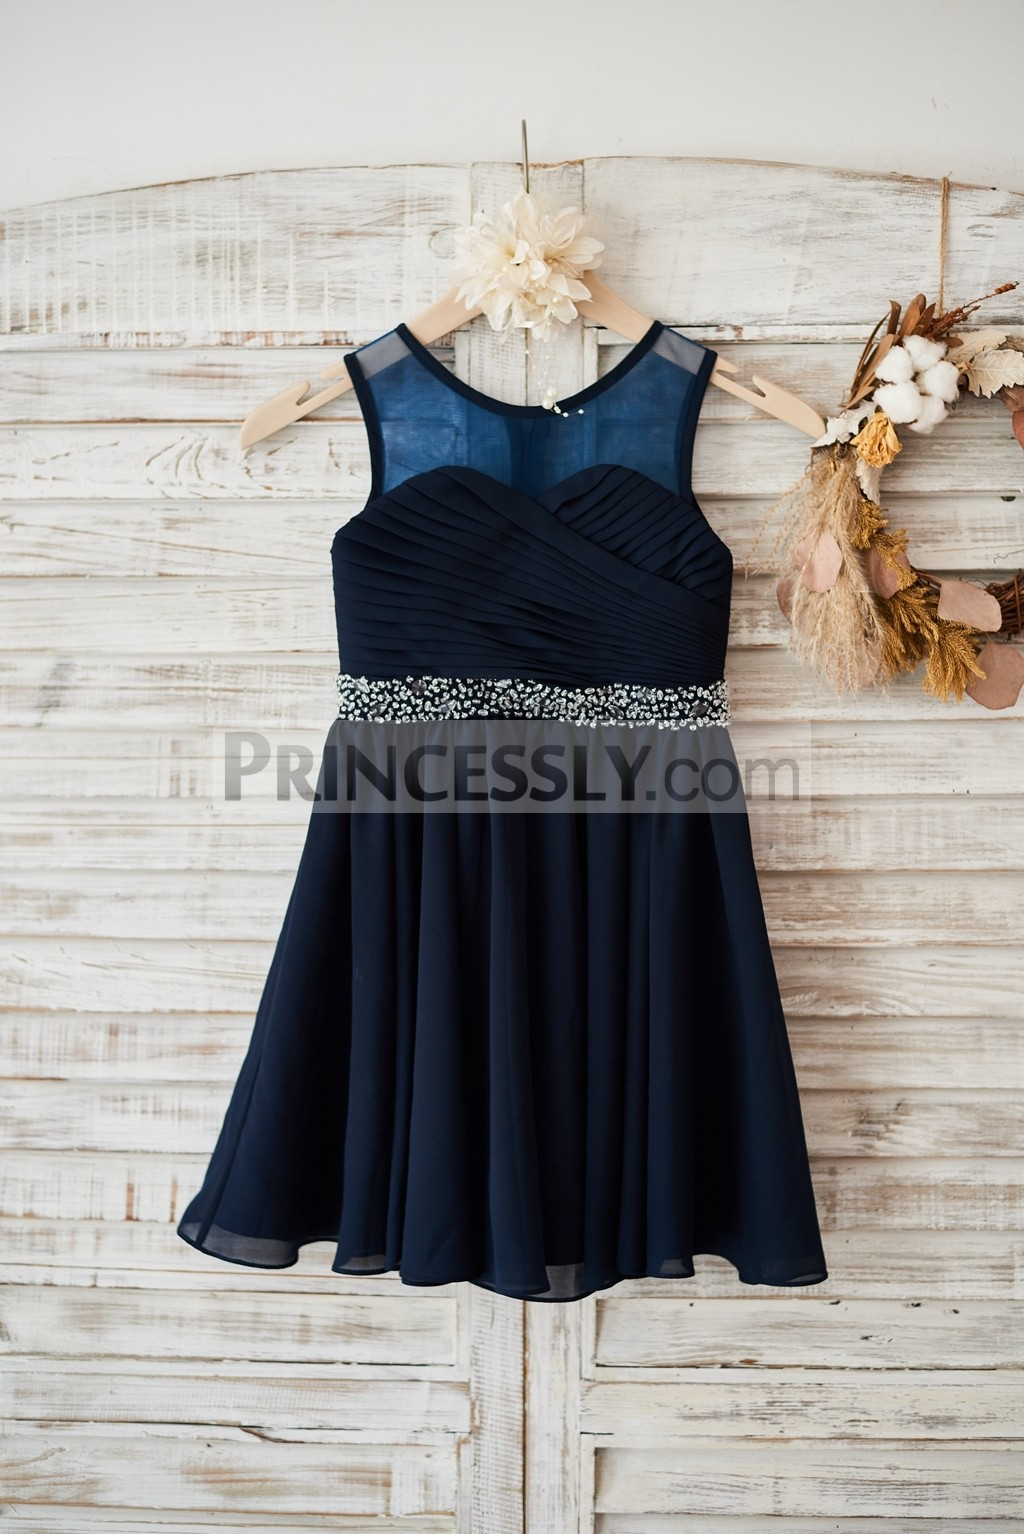 Sheer neck navy blue chiffon wedding flower girl dress